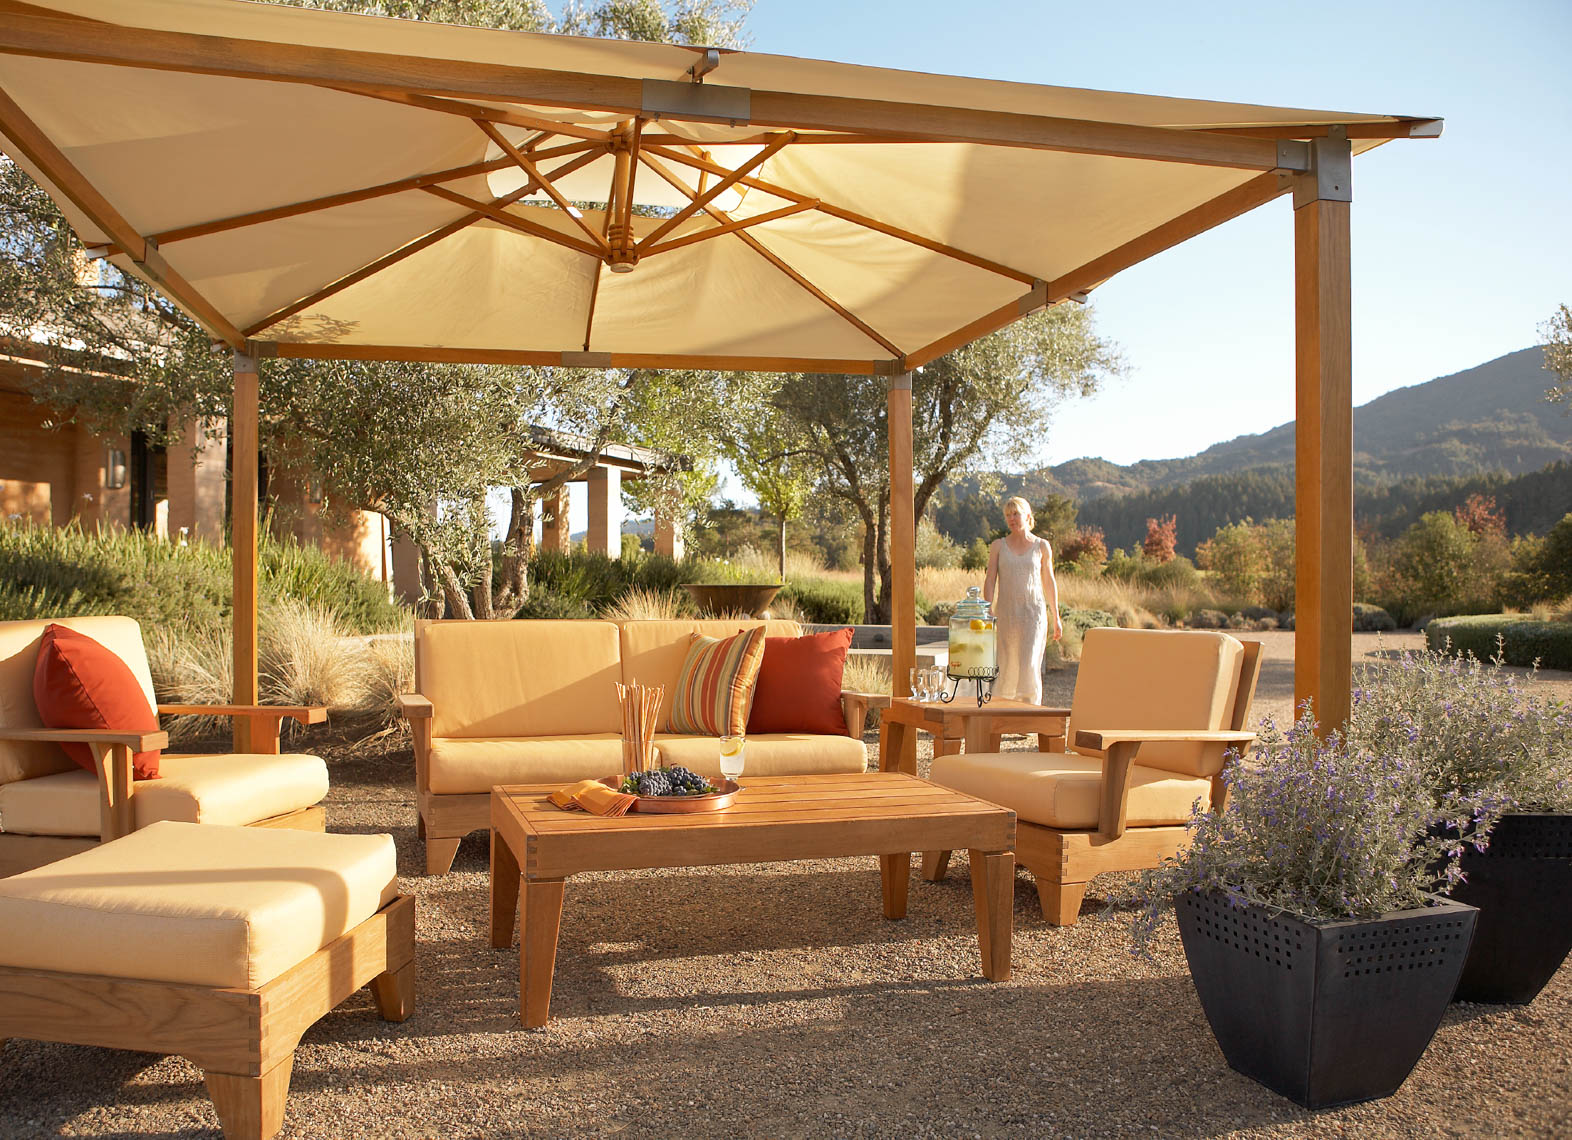 outdoor teak furniture with cushions and furniture under canvas canopy in pea gravel